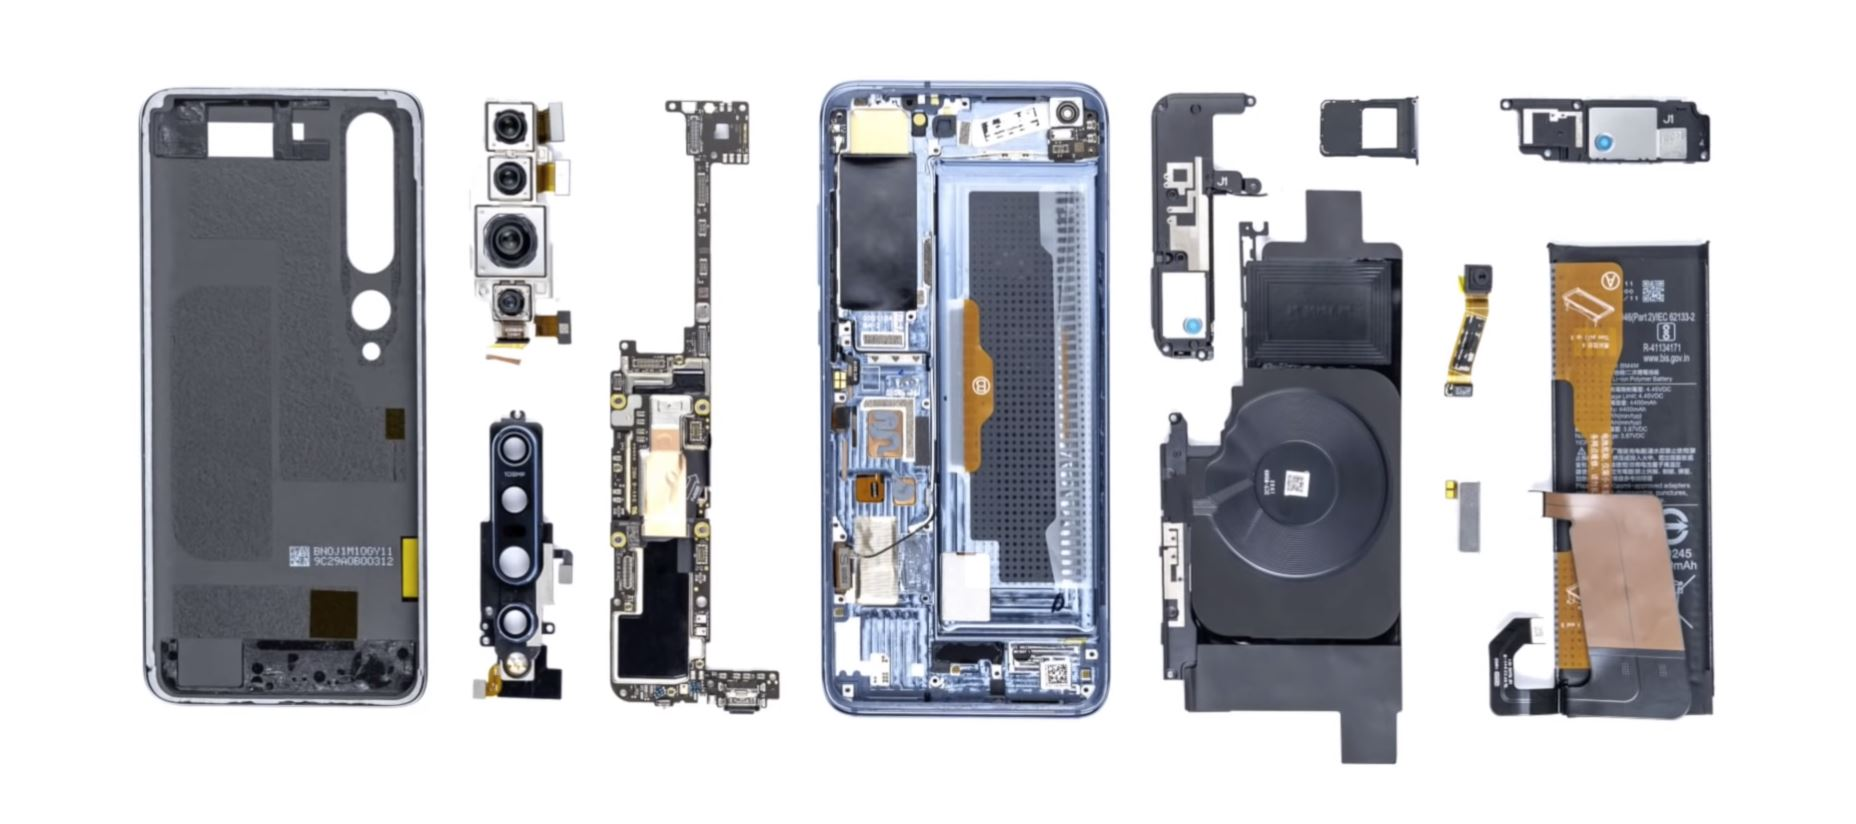 Xiaomi Mi 10 Pro senza segreti in questo video teardown